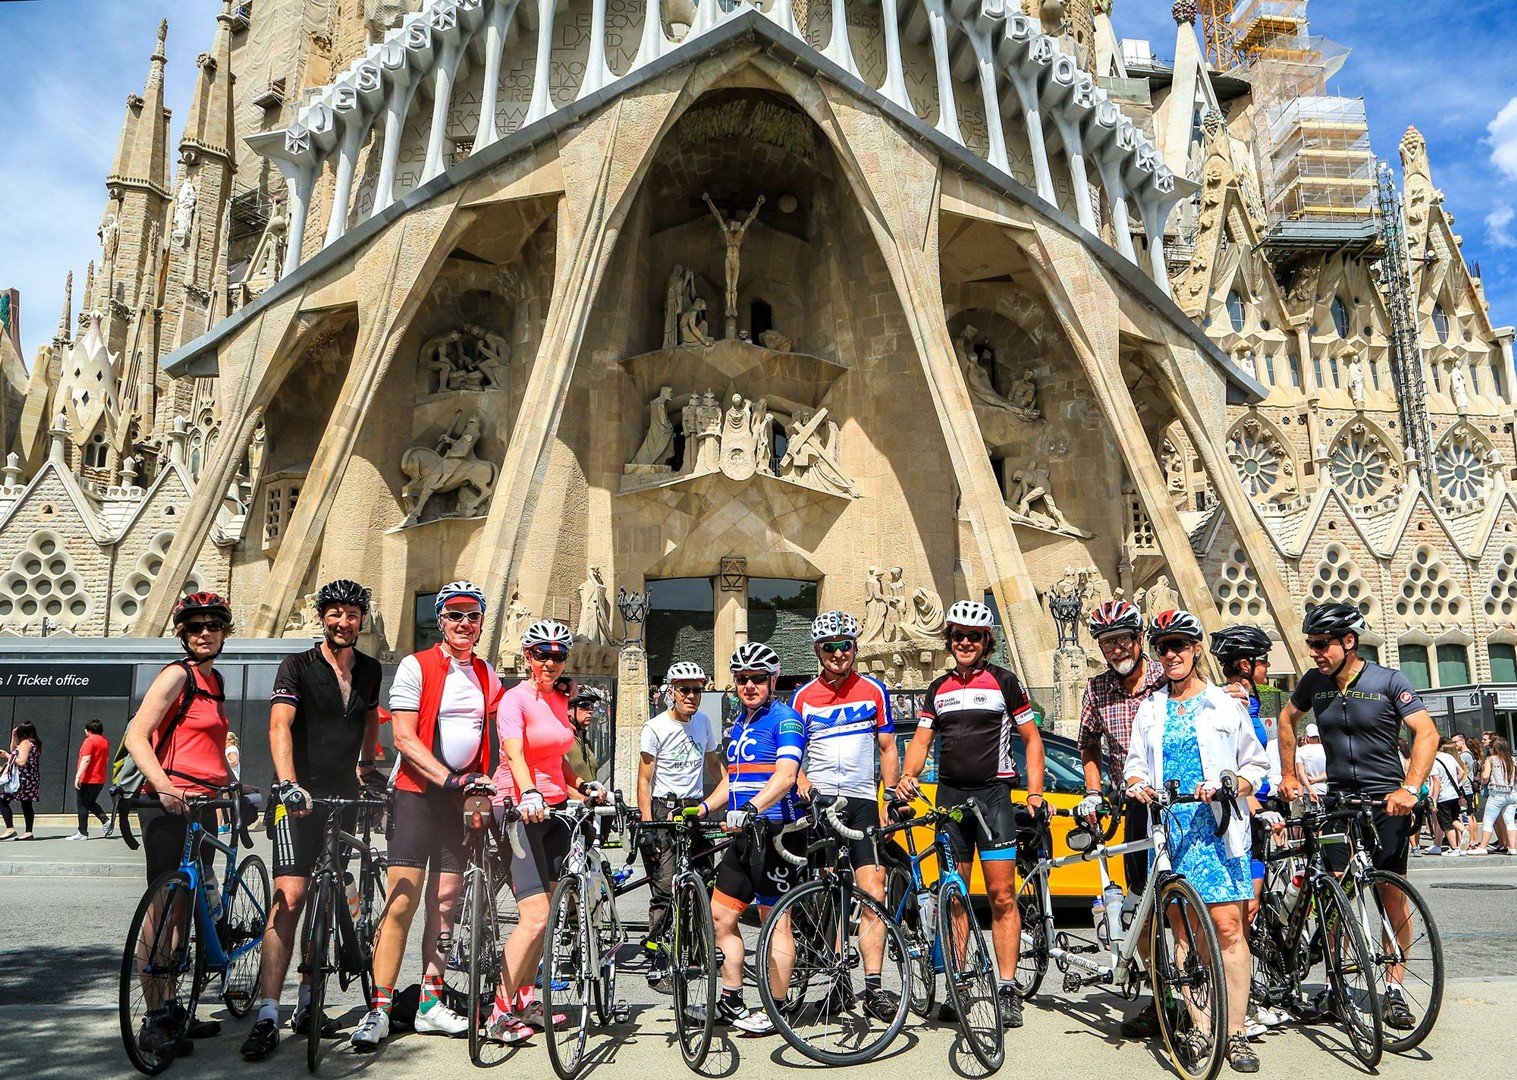 guided-road-holiday-cycling-bilbao-to-barcelona-with-saddle-skedaddle-guides.jpg - Northern Spain - Bilbao to Barcelona - Guided Road Cycling Holiday - Road Cycling